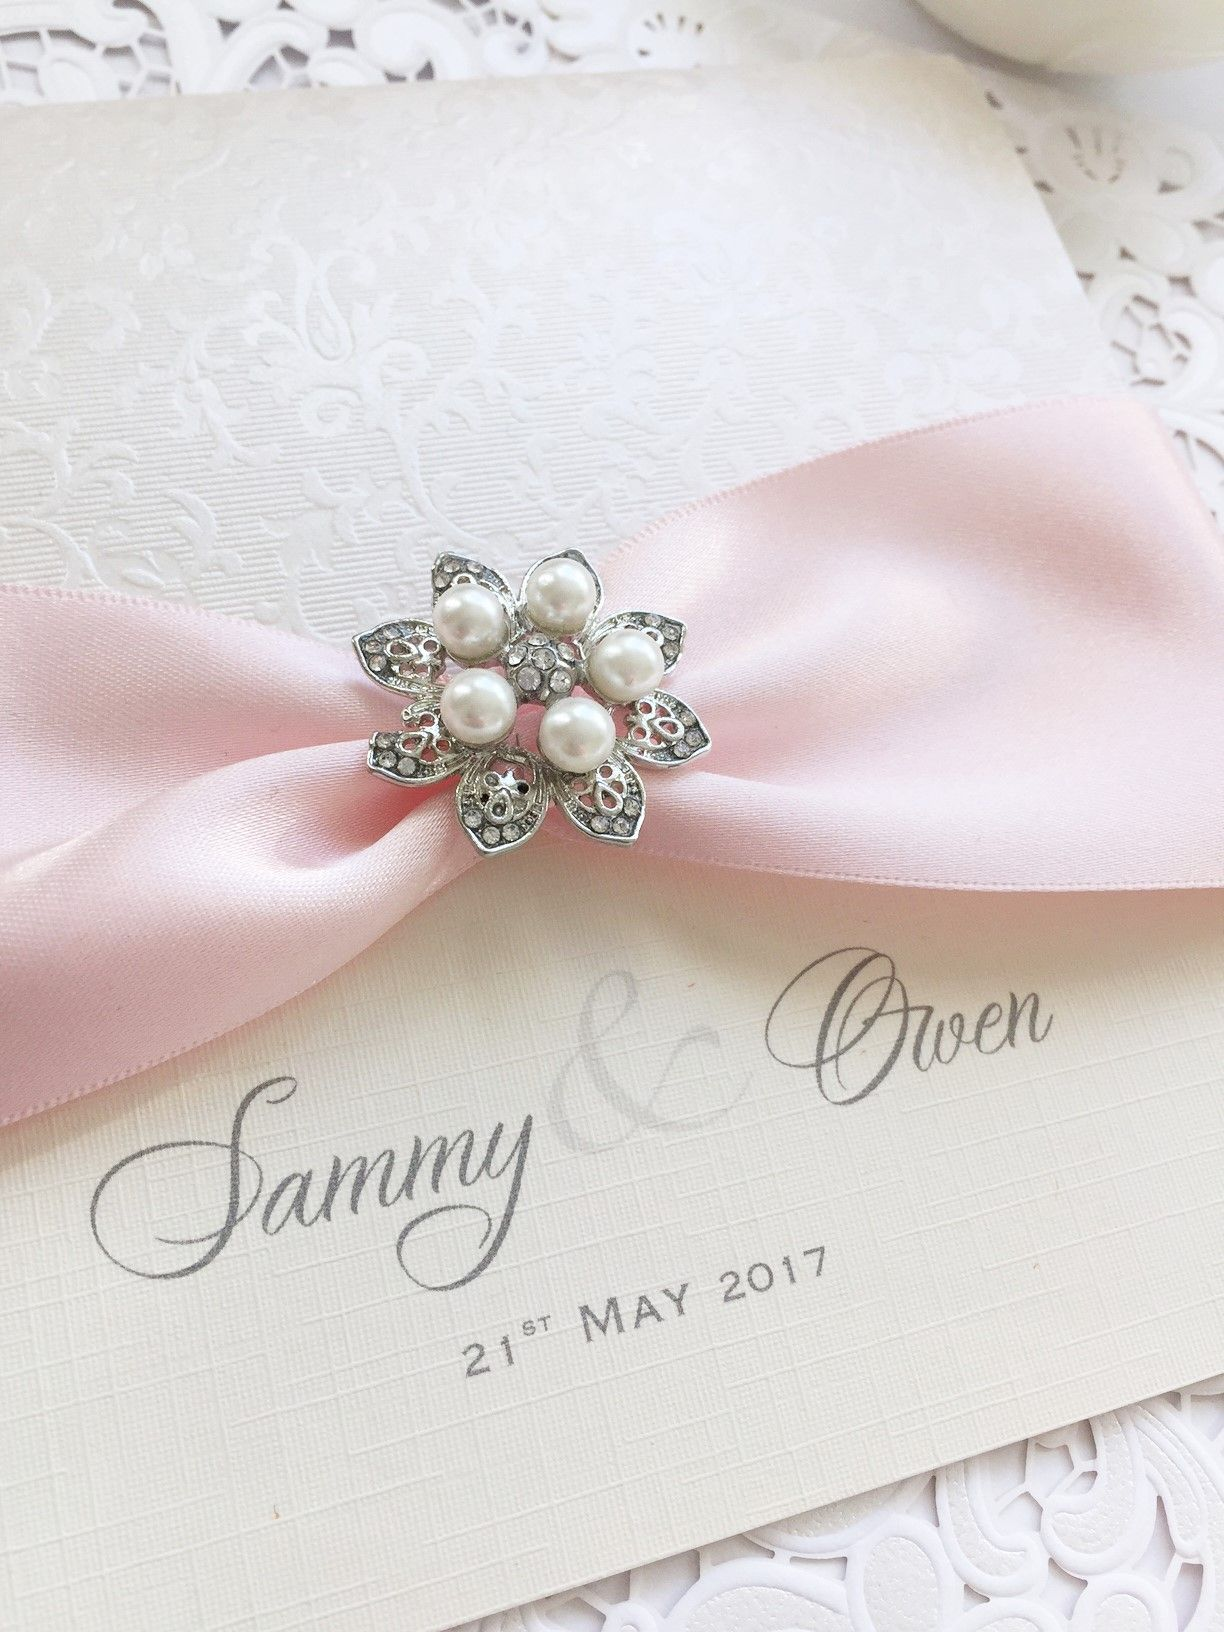 Boxed luxury invitation with blush pink ribbon